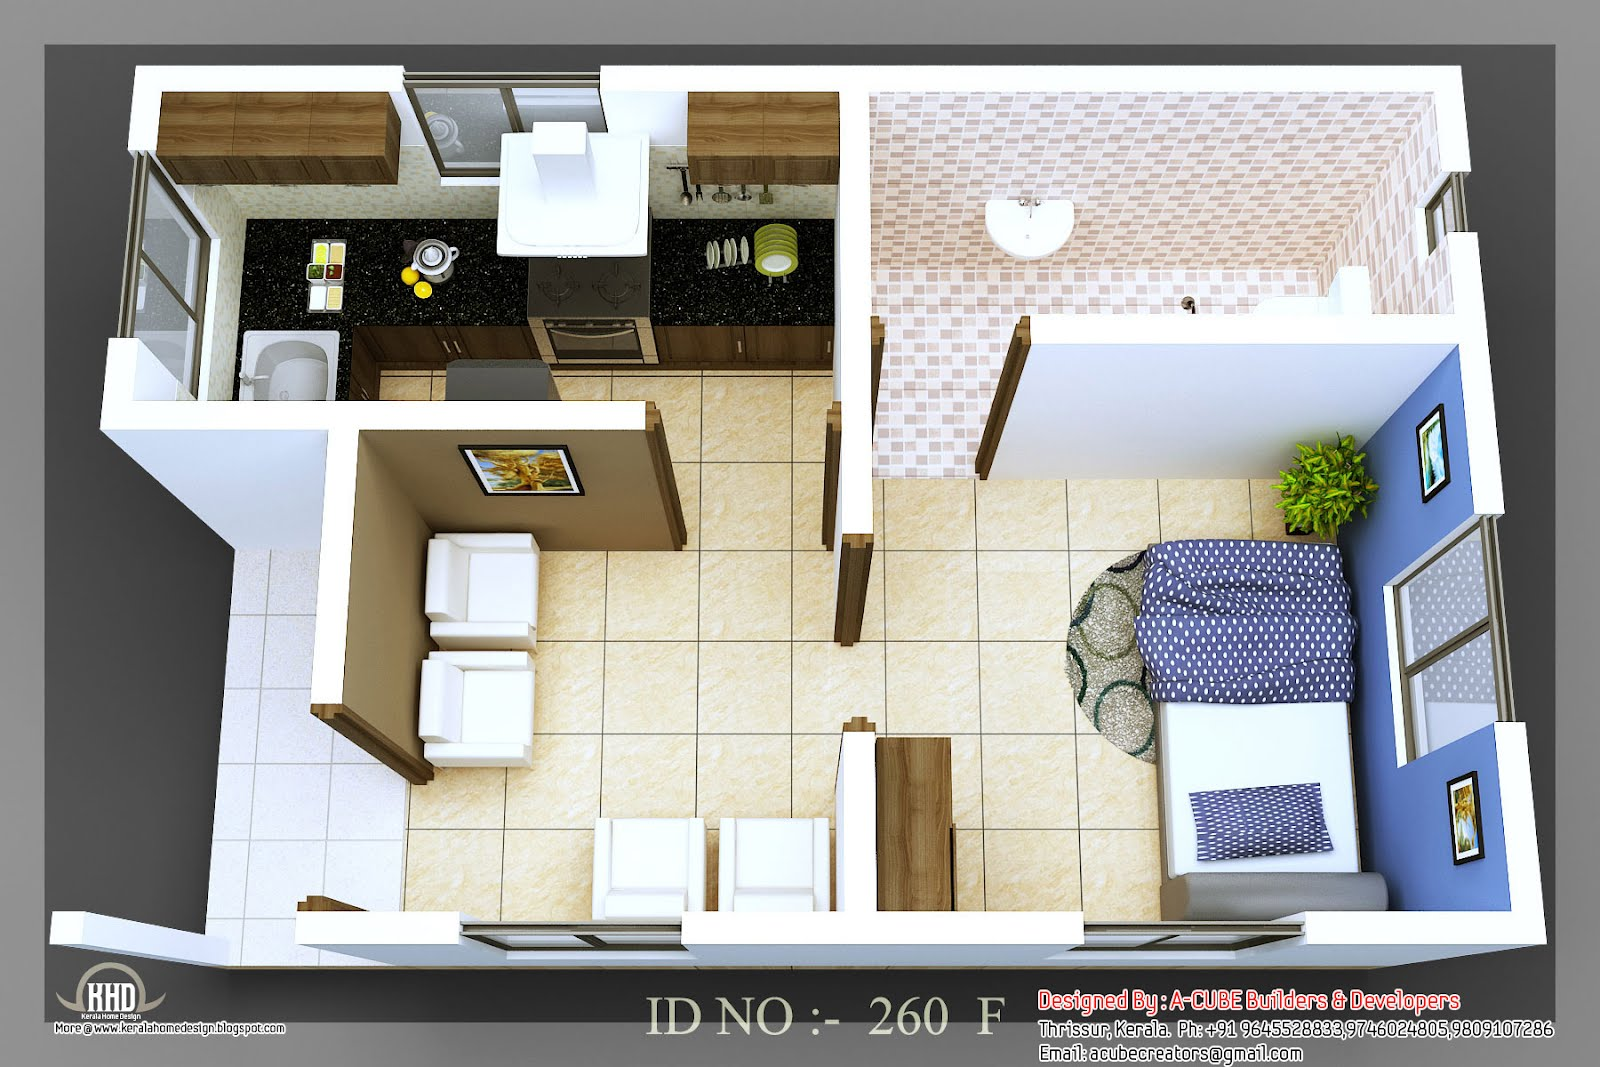 3d isometric views of small house plans home appliance Sample interior design for small house